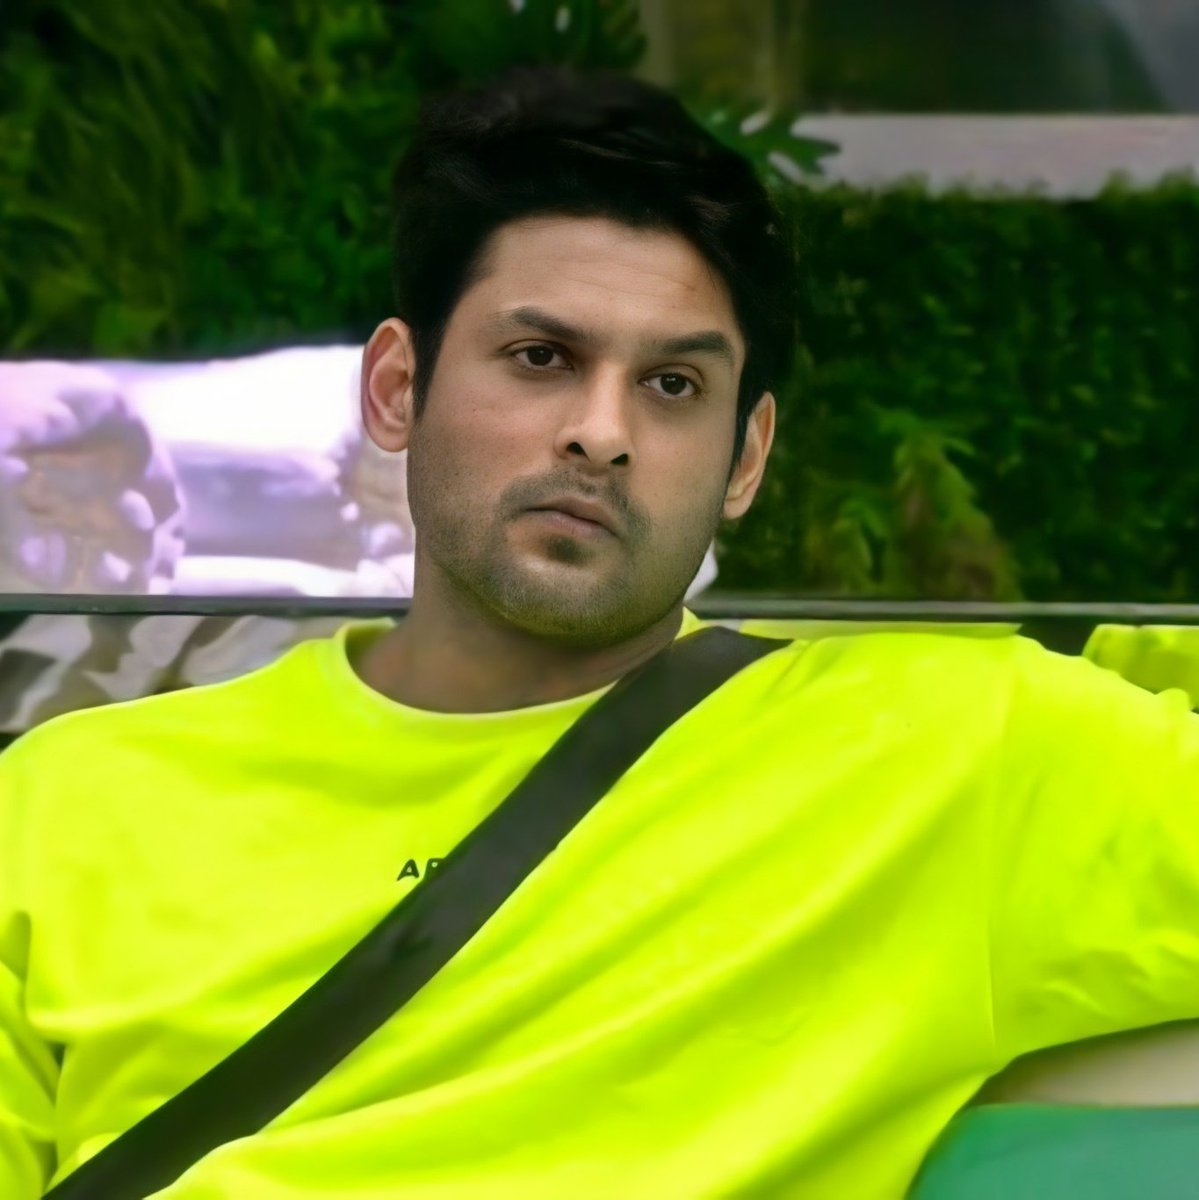 OK this one is galtfehmi ND confession as well I seriously didn't like your outfit that neon orange hoodie on wkv 🌝🌝 sorry tb muje lga ek ye chiz h jo #SidharthShukla pr n achi lgti pr aise kaise #SidharthShukla be like hold my lassi 😏 ND see #BB14 kya colorful candy lge Ho ap